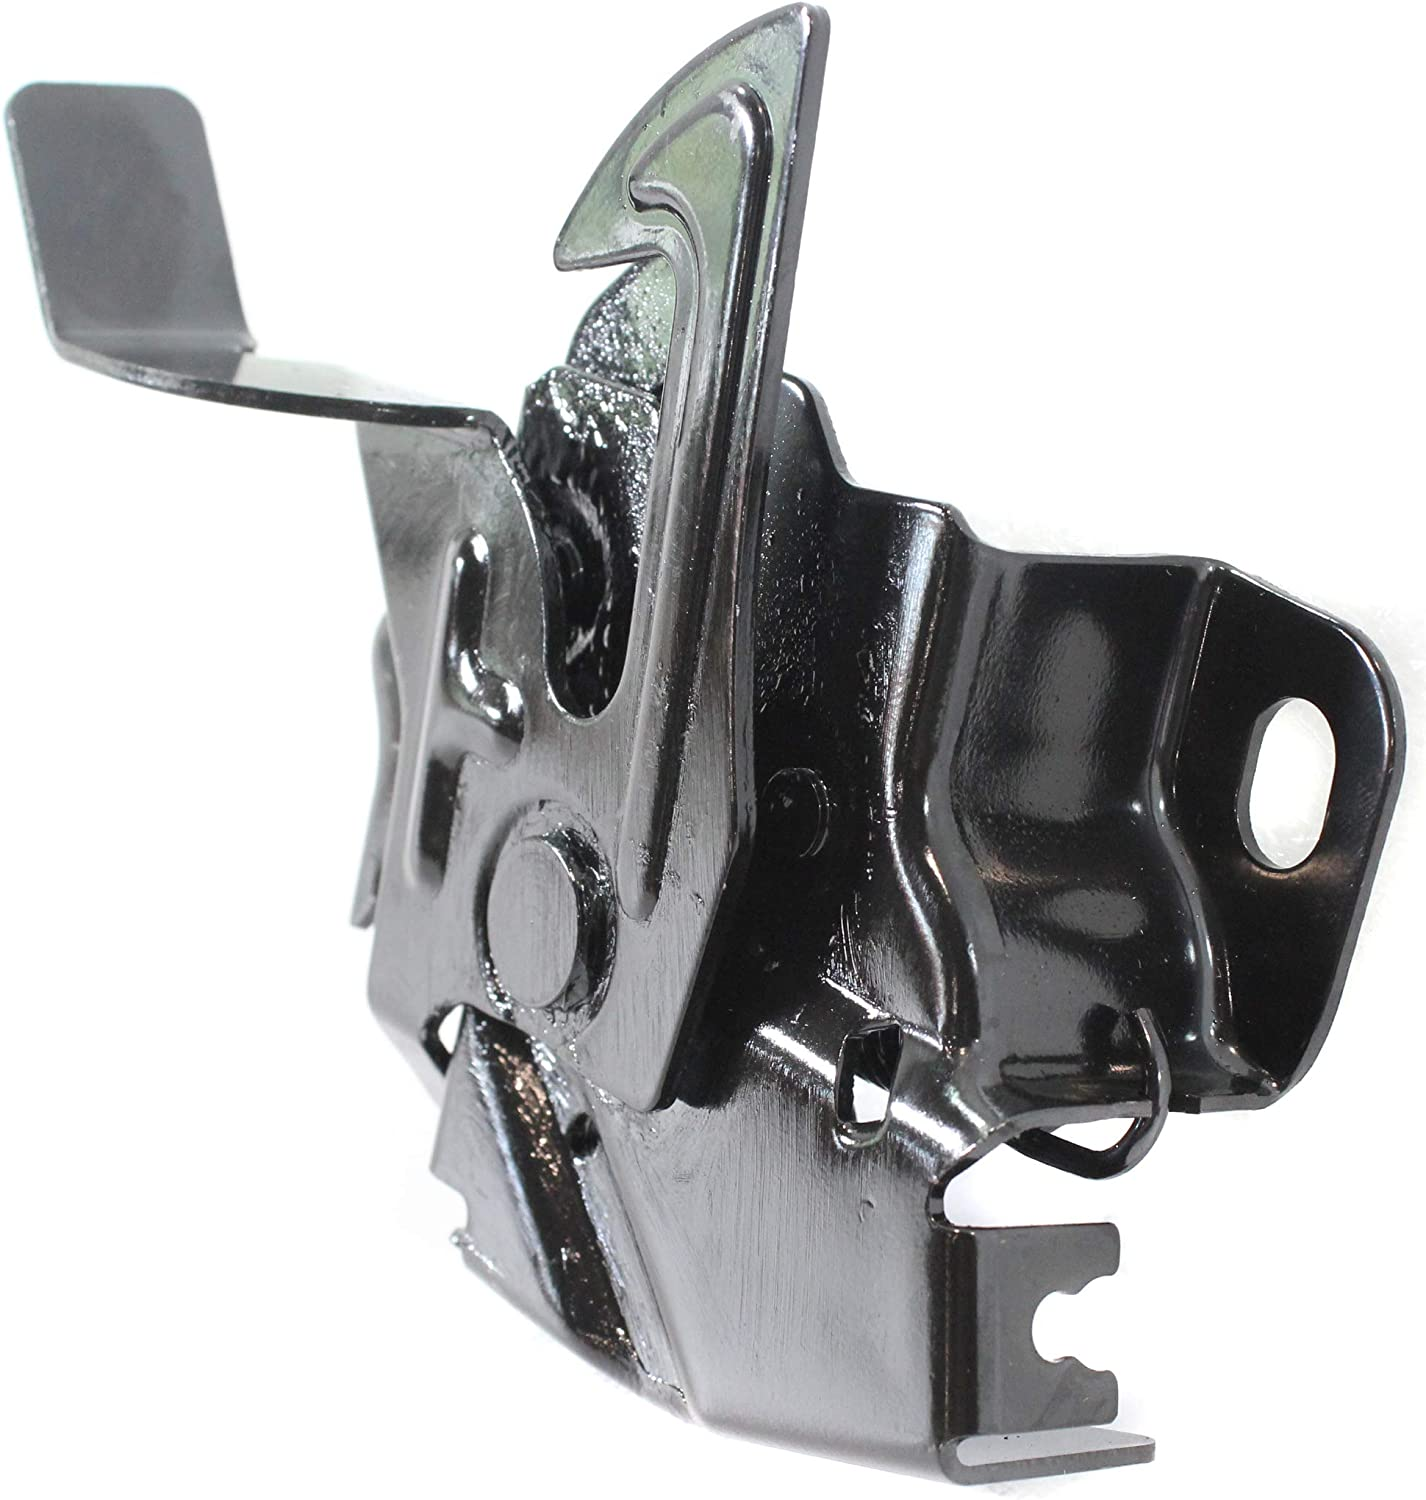 Hood Latch Compatible with HONDA FIT 2007-2008